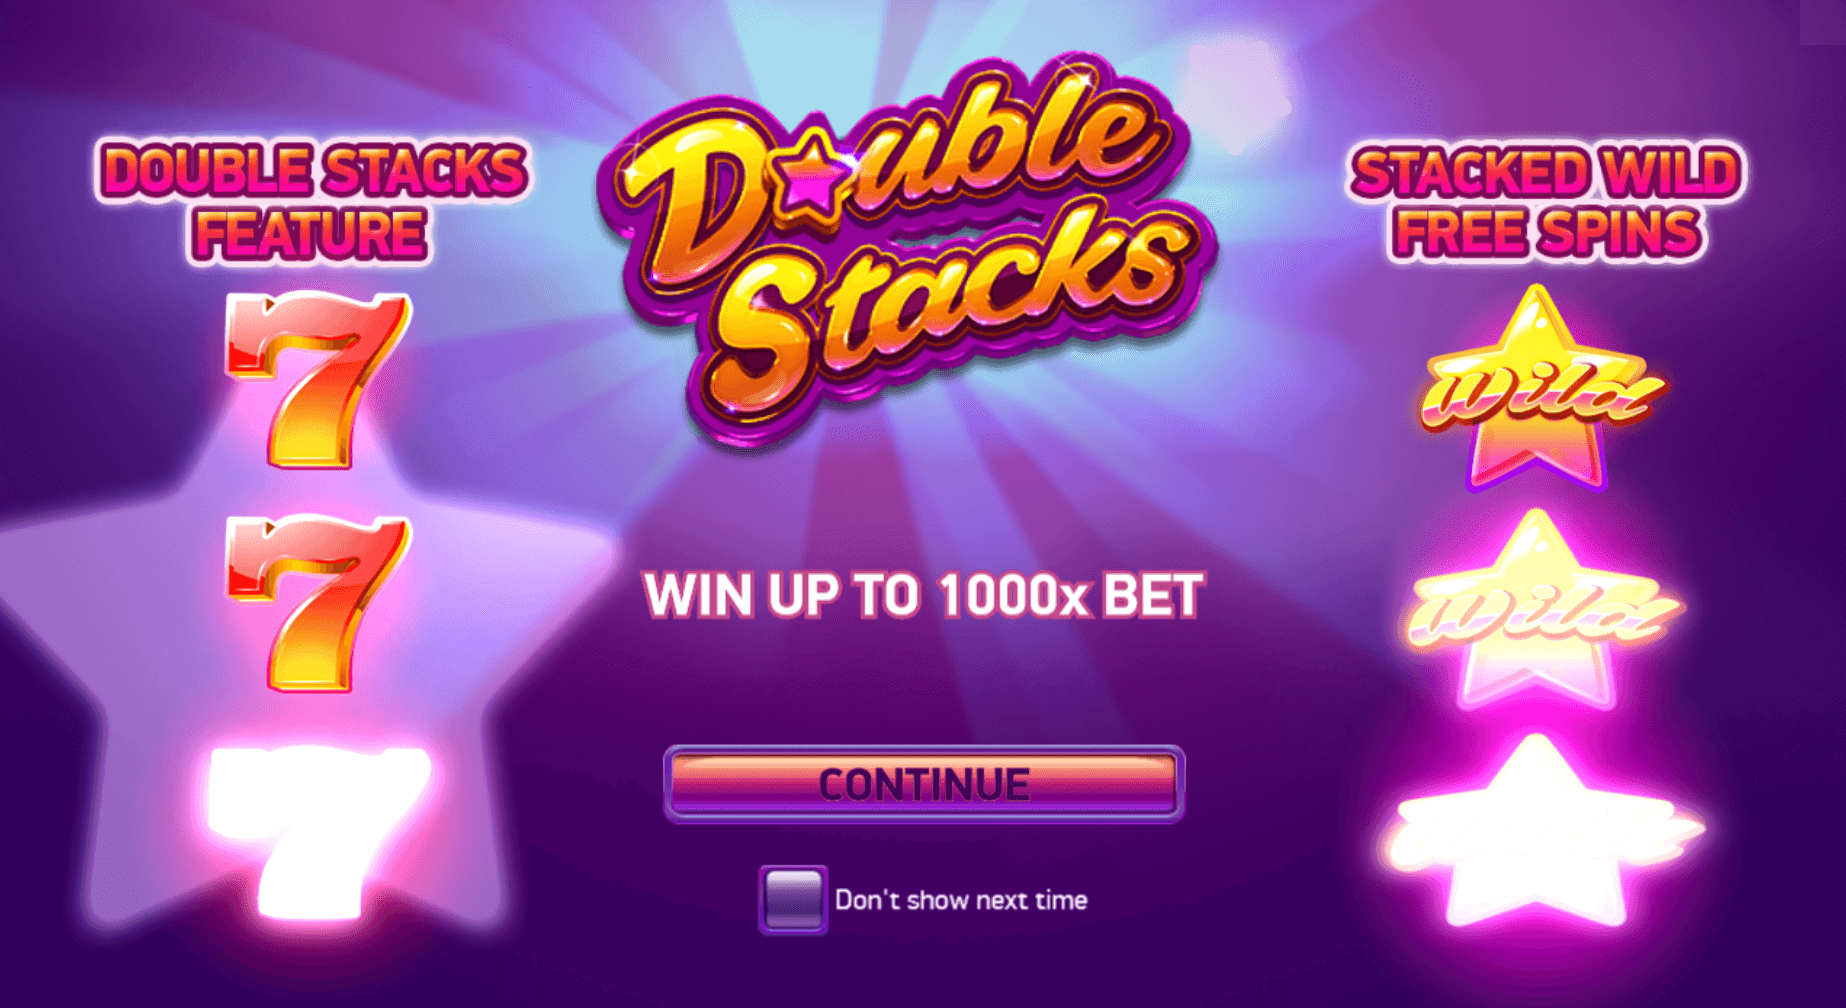 Casino en Alemania double stacks netent 782168